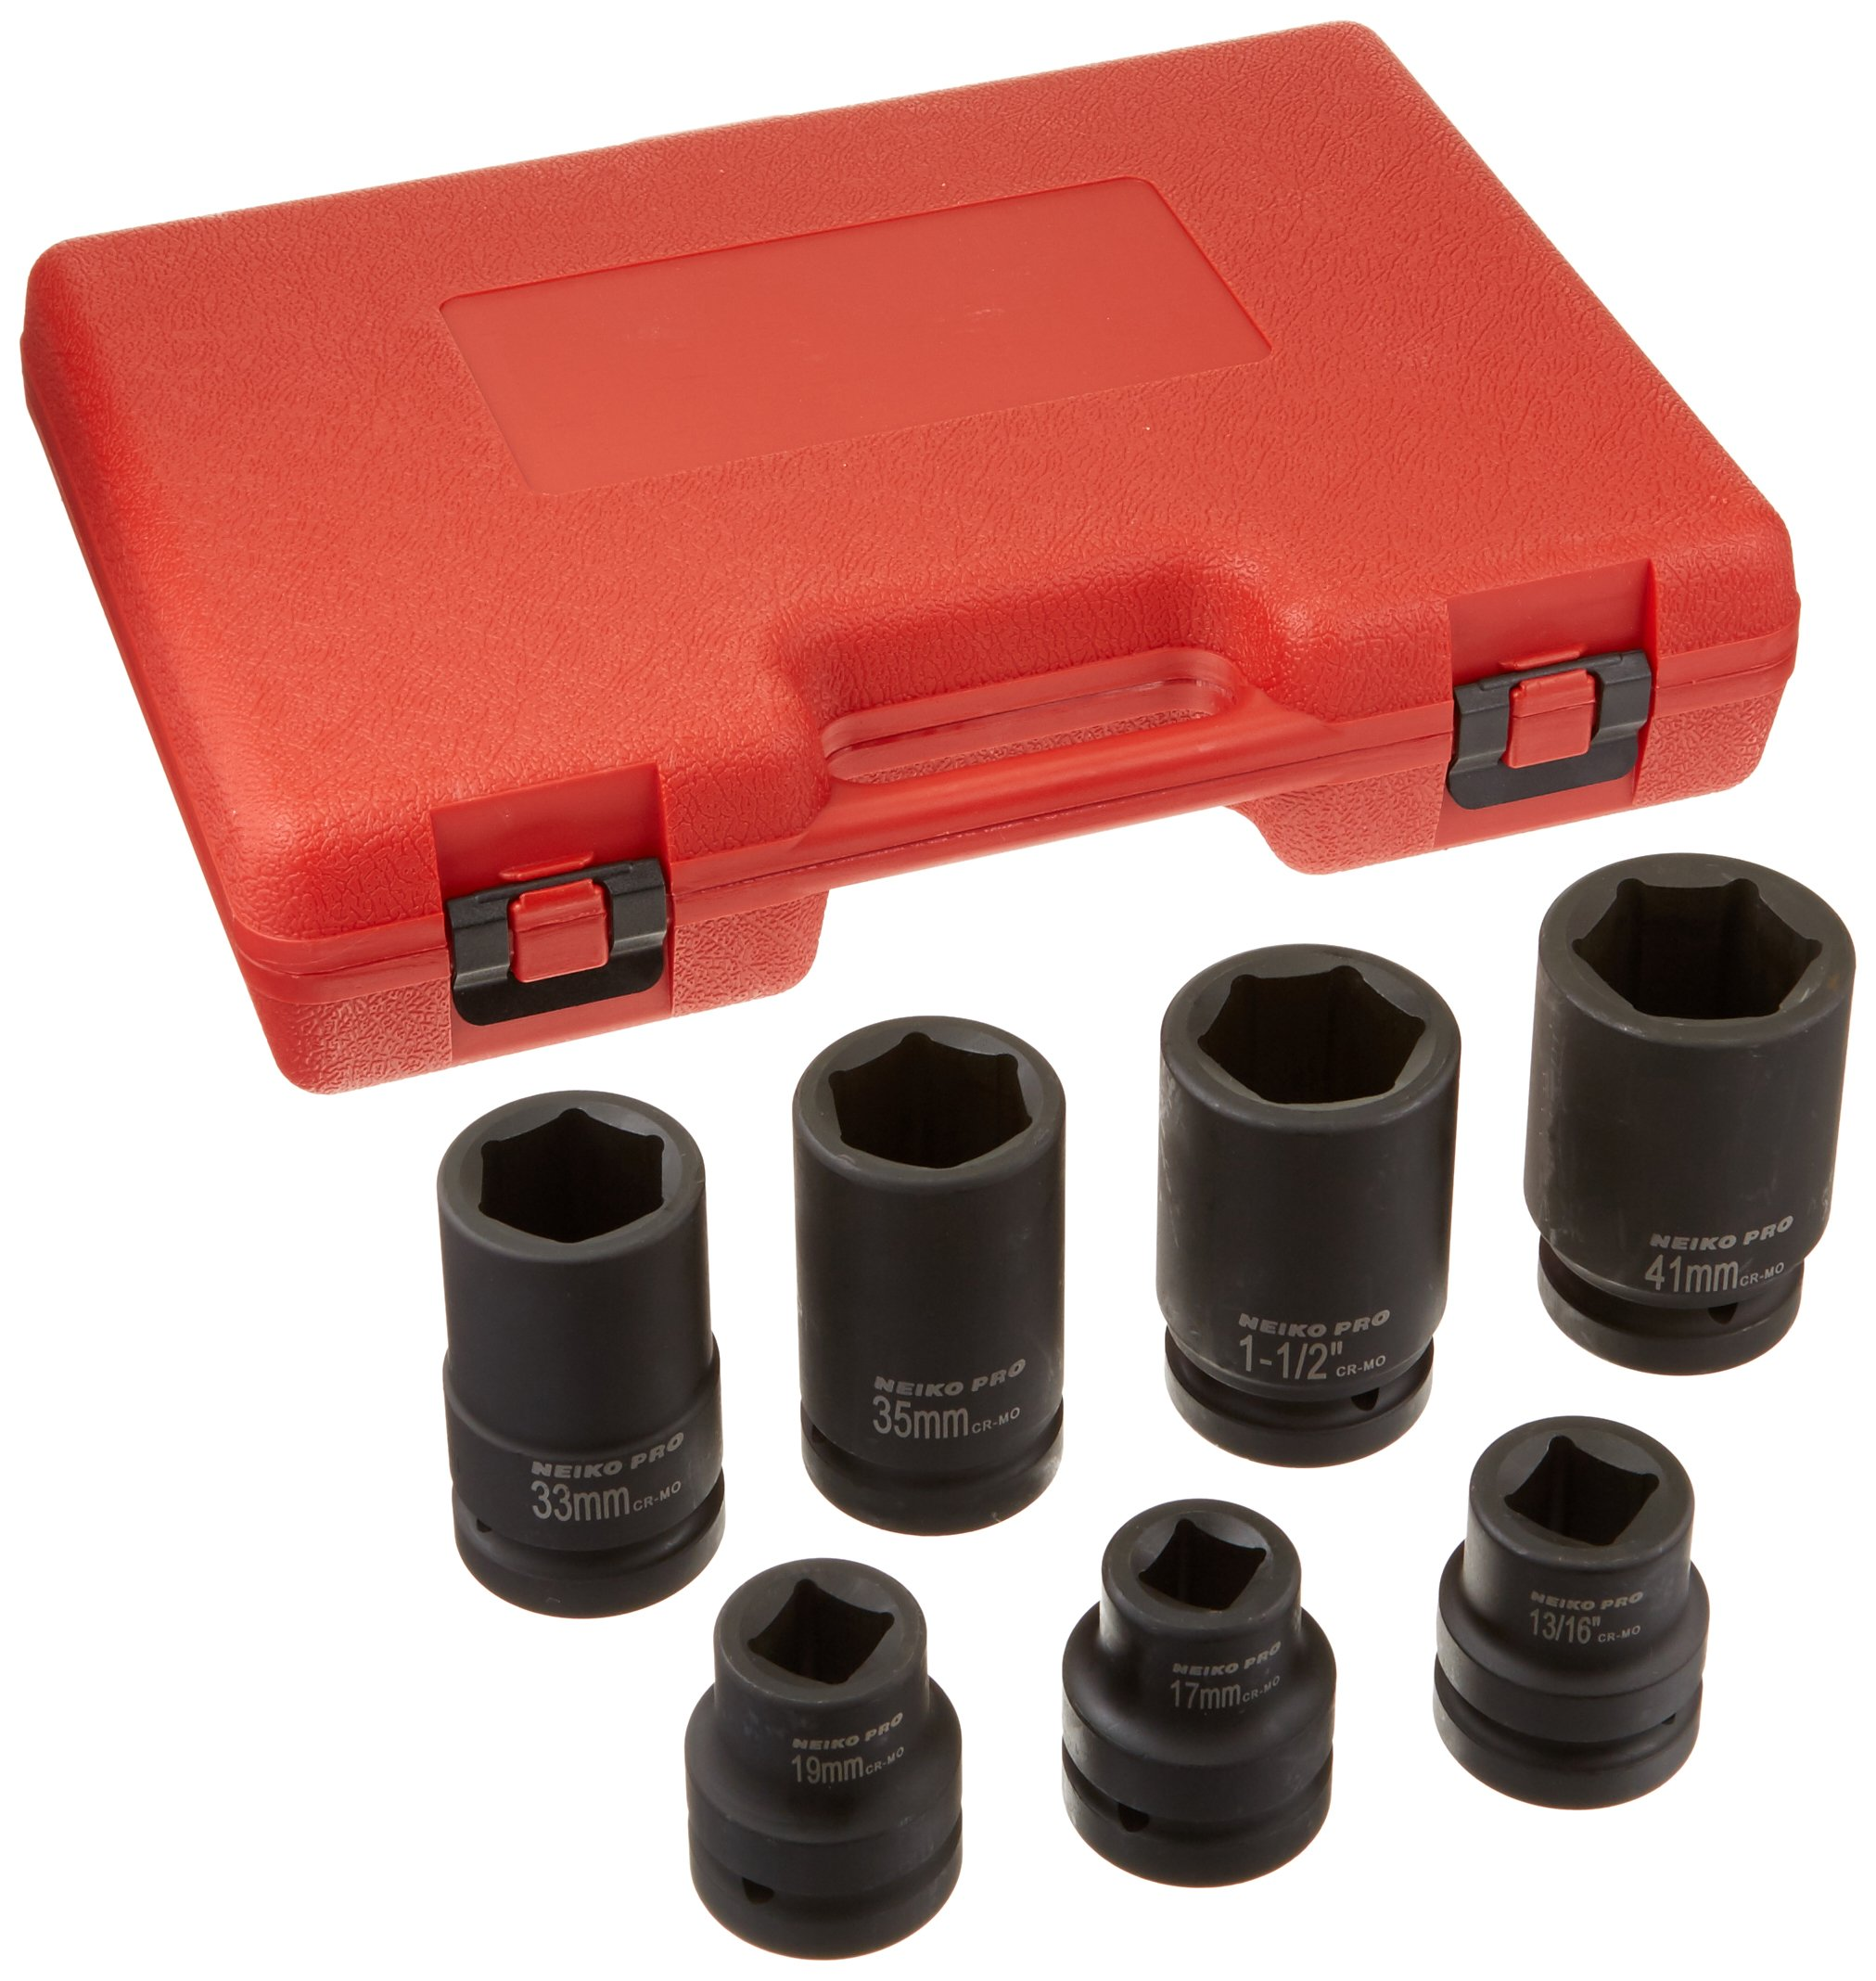 Neiko 02487B Cr-Mo 1'' Drive Impact Socket Set for Truck and Tire Service by Neiko (Image #2)